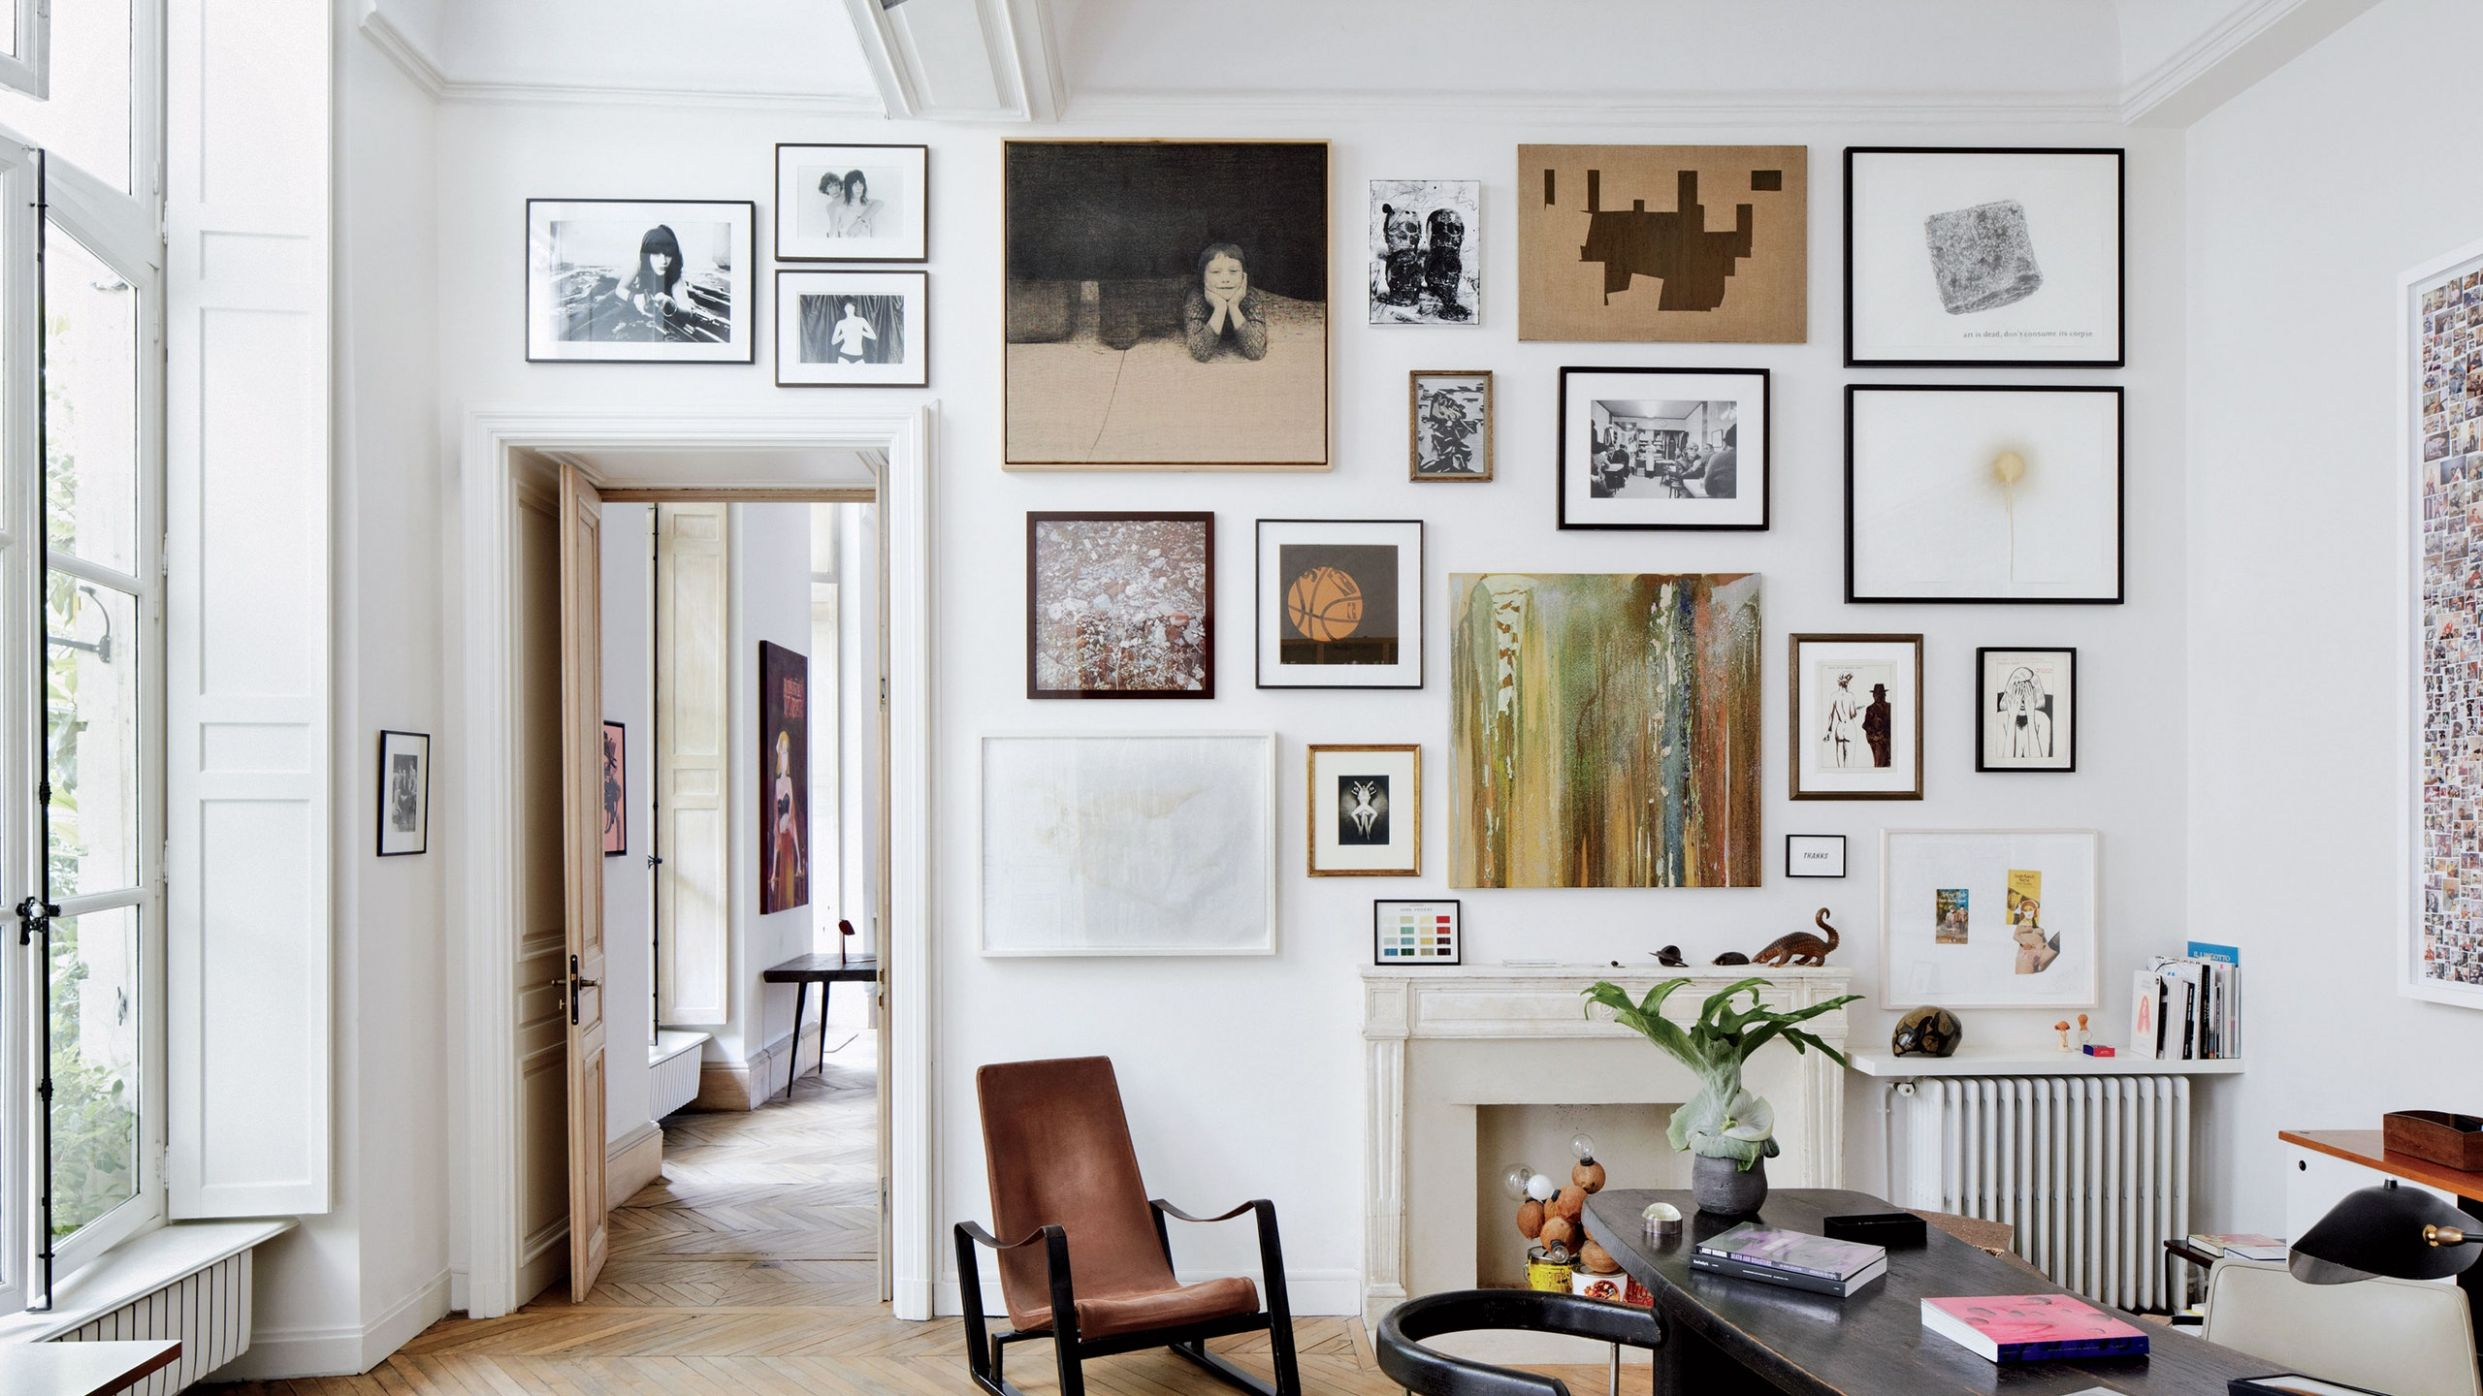 12 Wall Decor Ideas to Refresh Your Space | Architectural Digest - wall decor ideas next